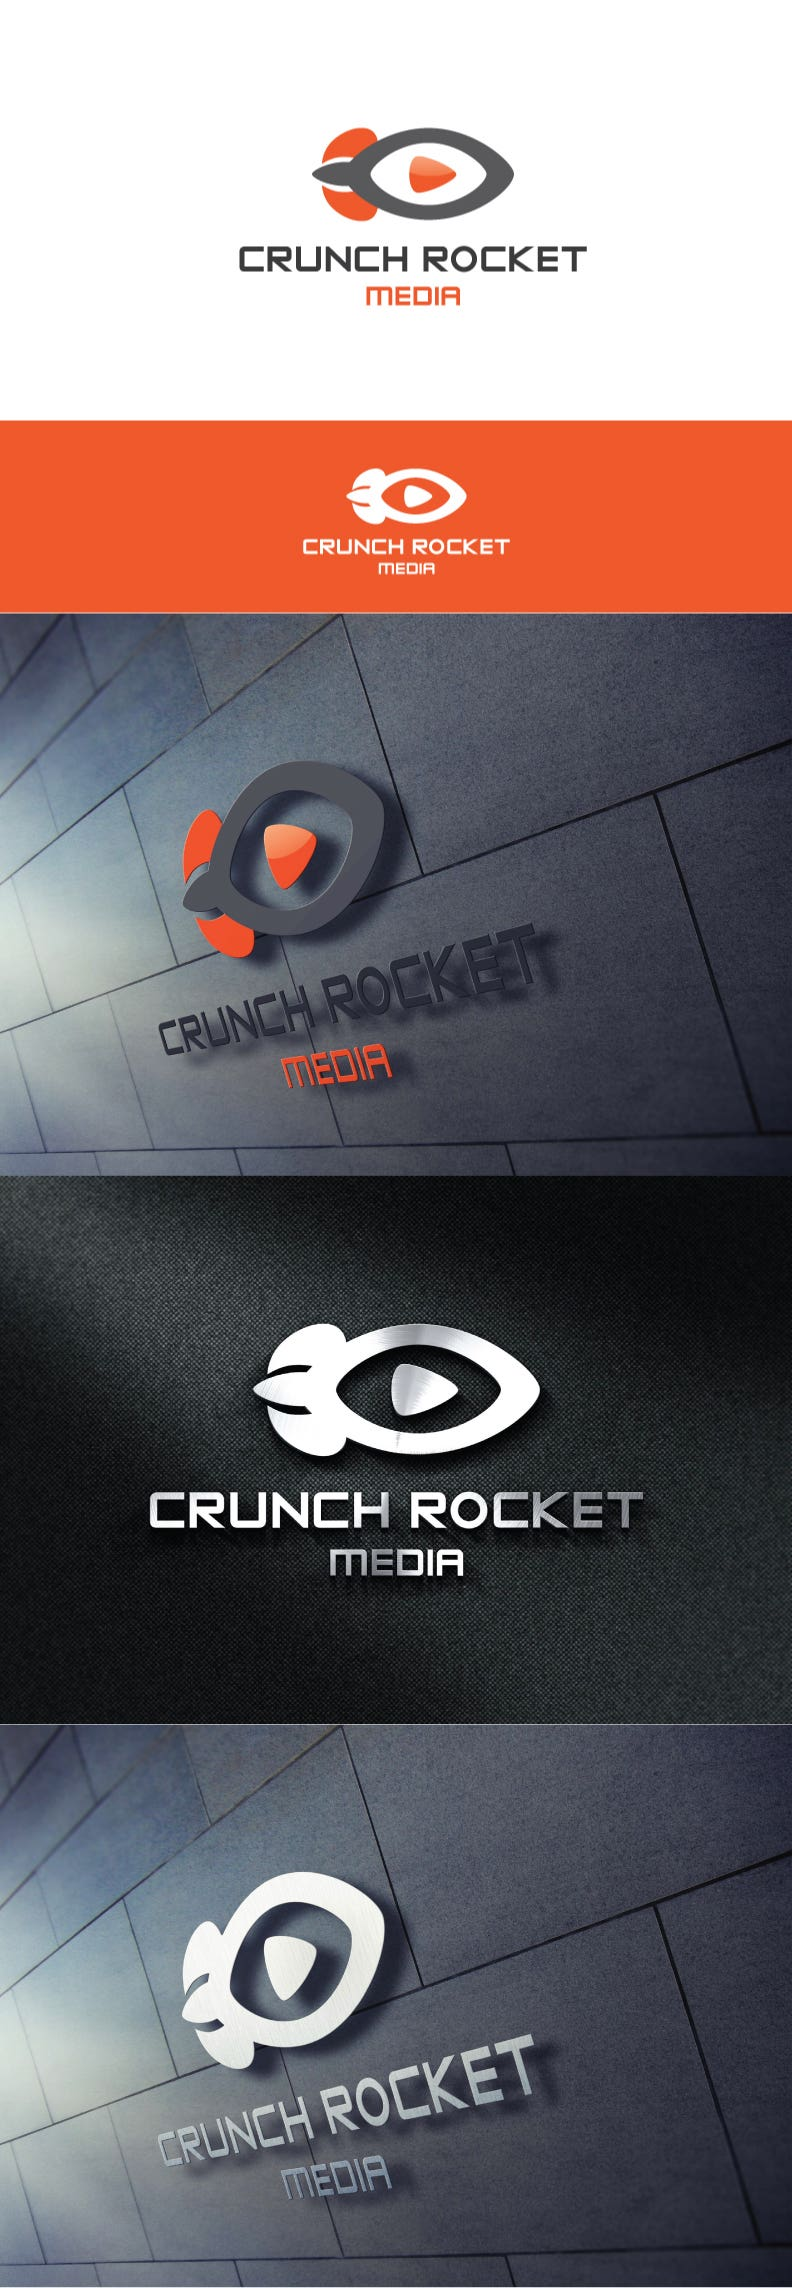 Crunch Rocket logo